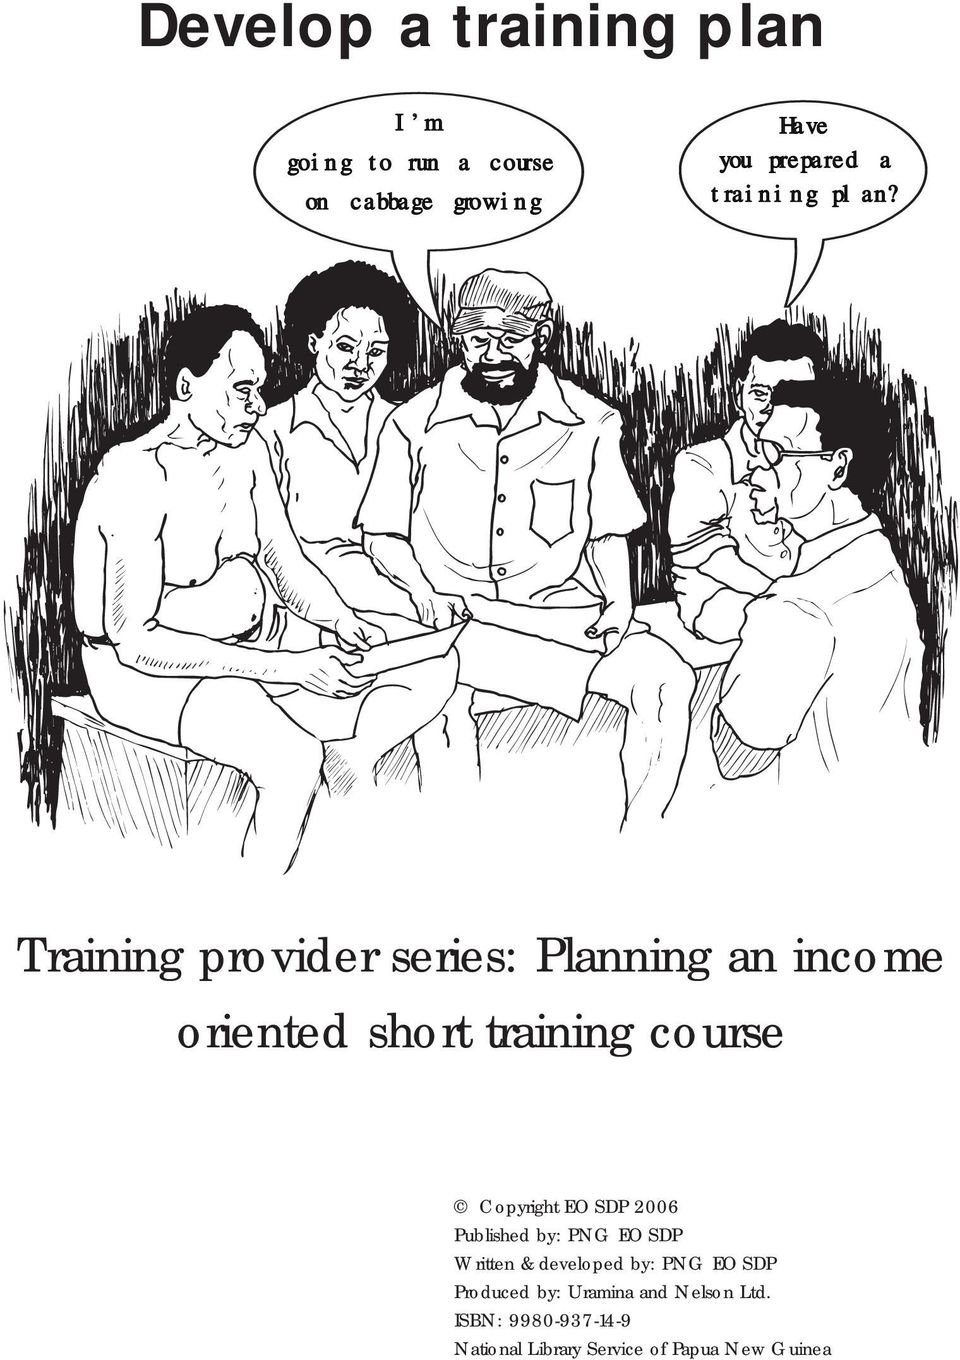 Training provider series: Planning an income oriented short training course Copyright